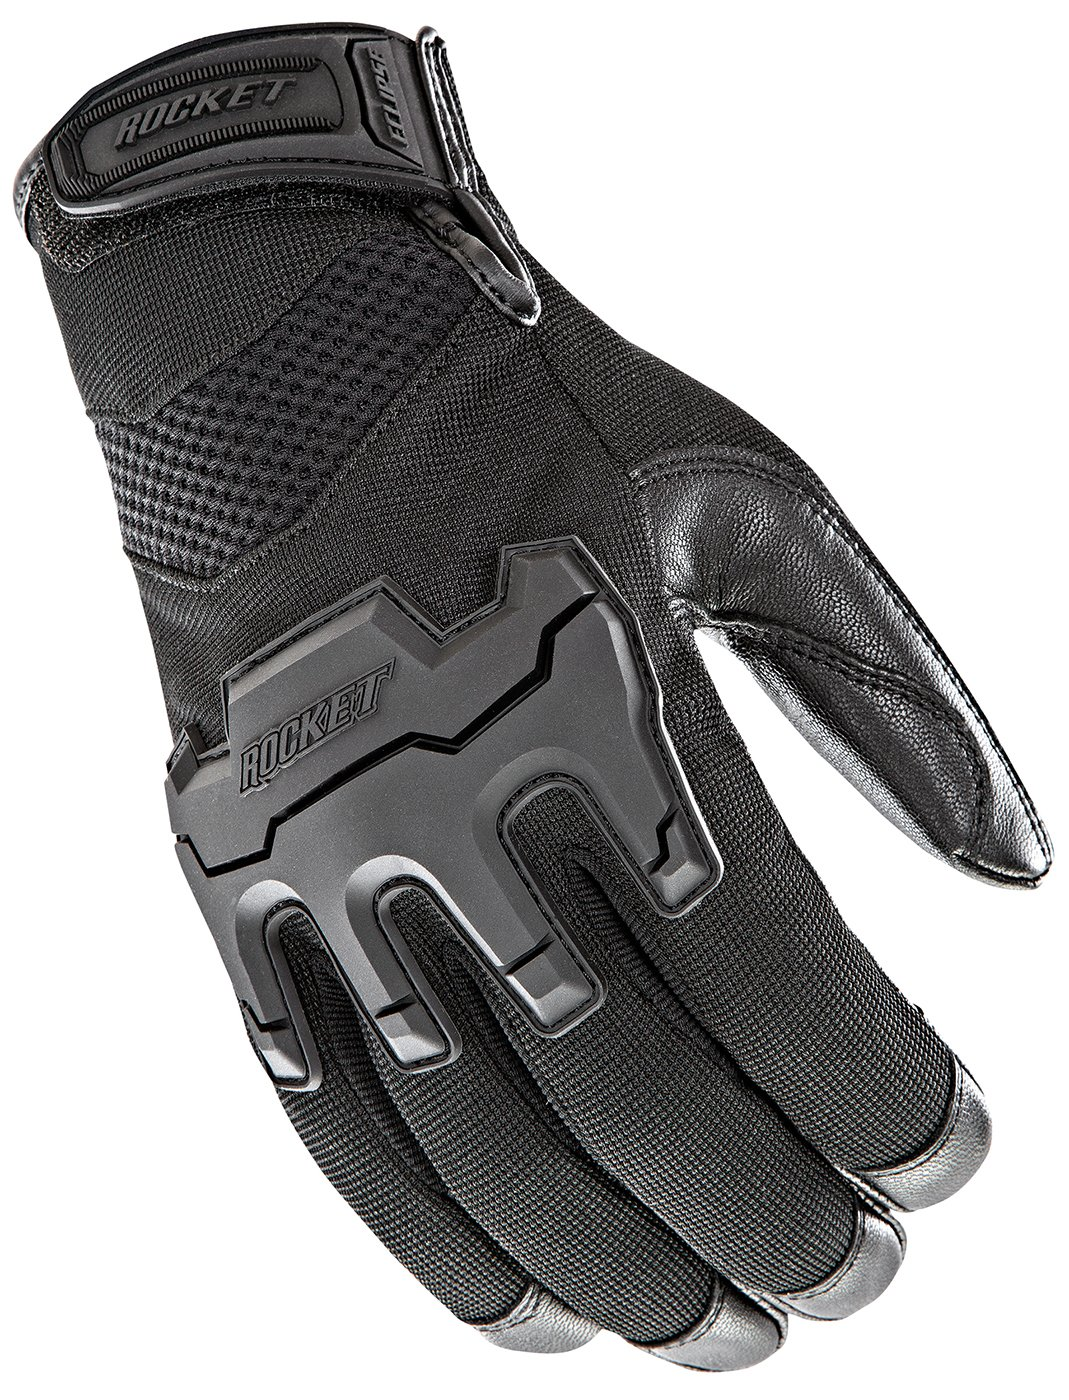 Joe Rocket Men's Eclipse Gloves (Black, Large)